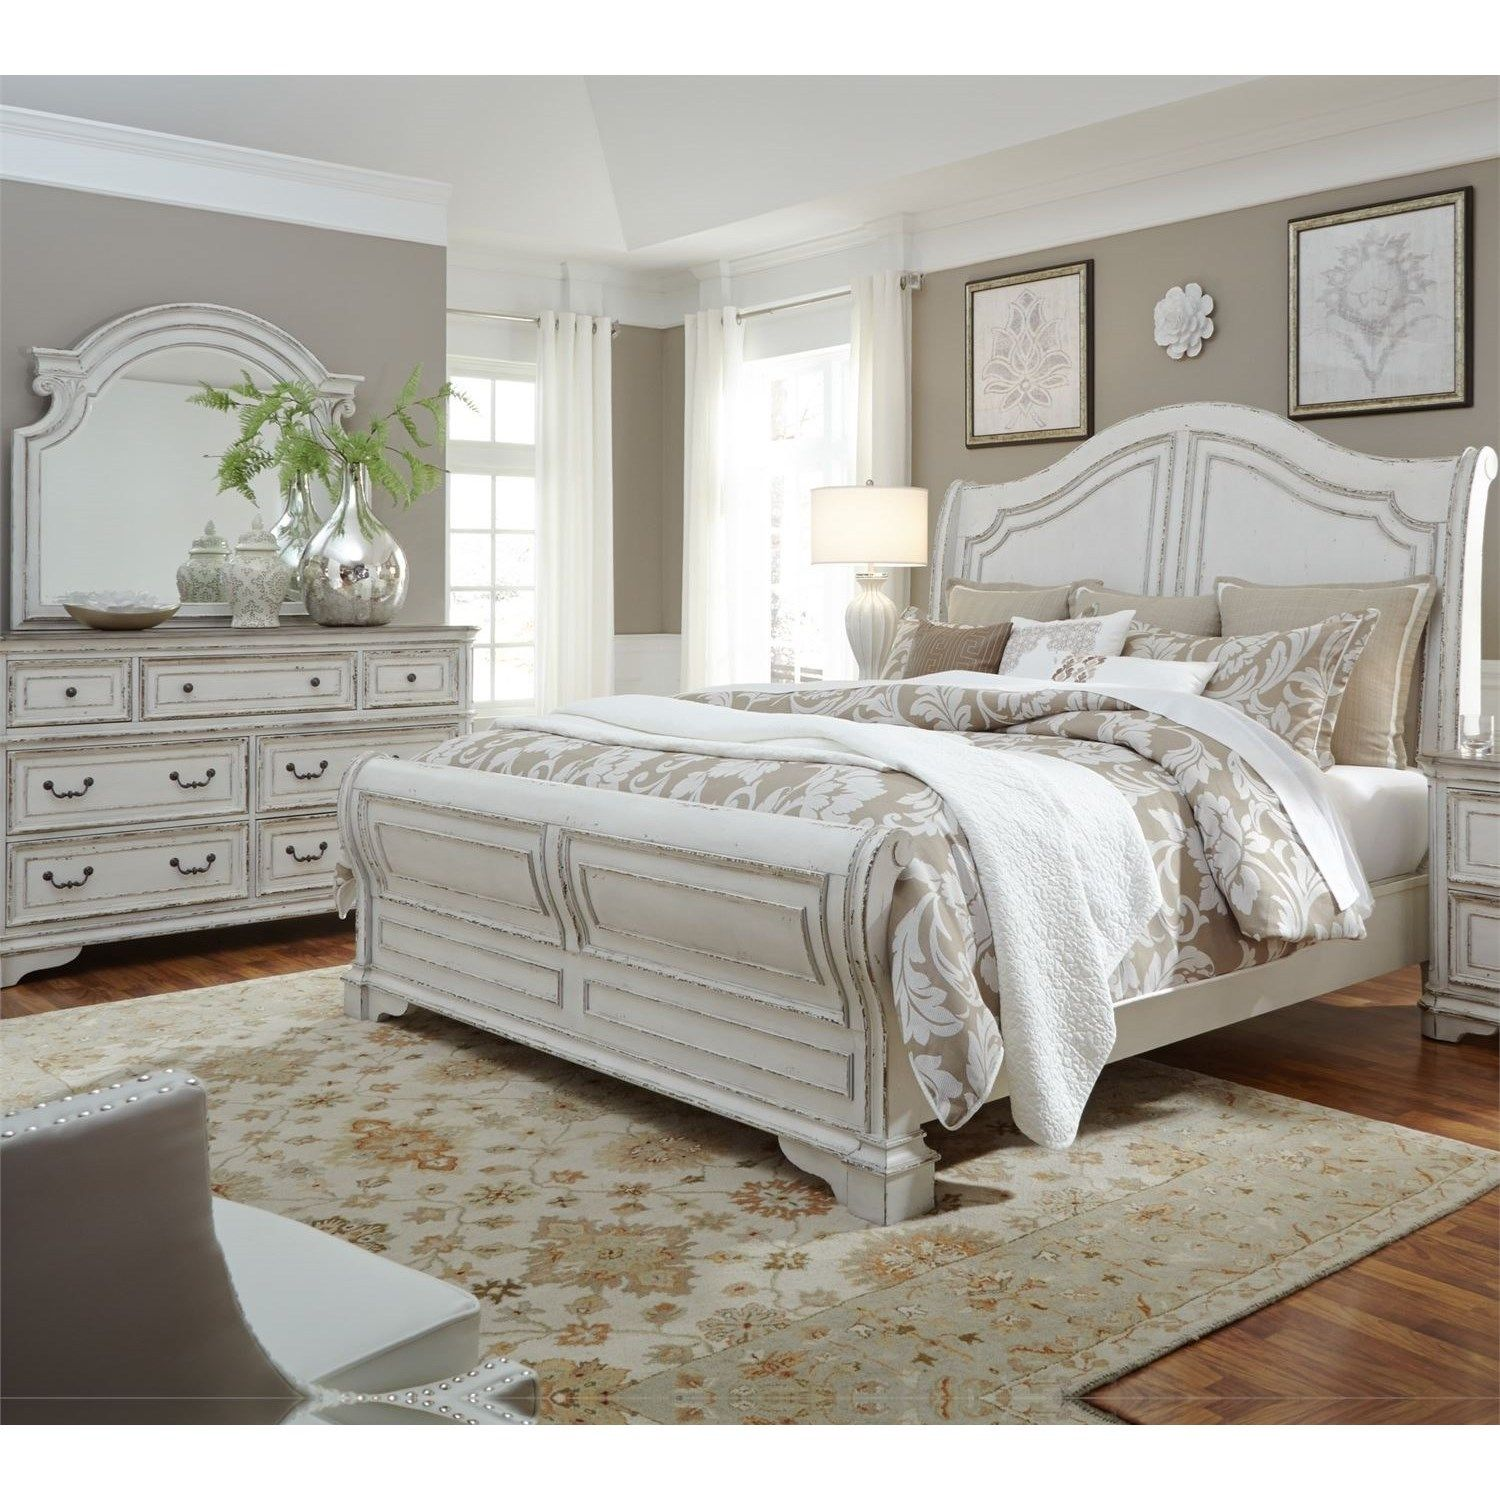 Magnolia Manor Queen Bedroom Group By Liberty Furniture At Hudson S Furniture White Sleigh Bed Liberty Furniture Furniture